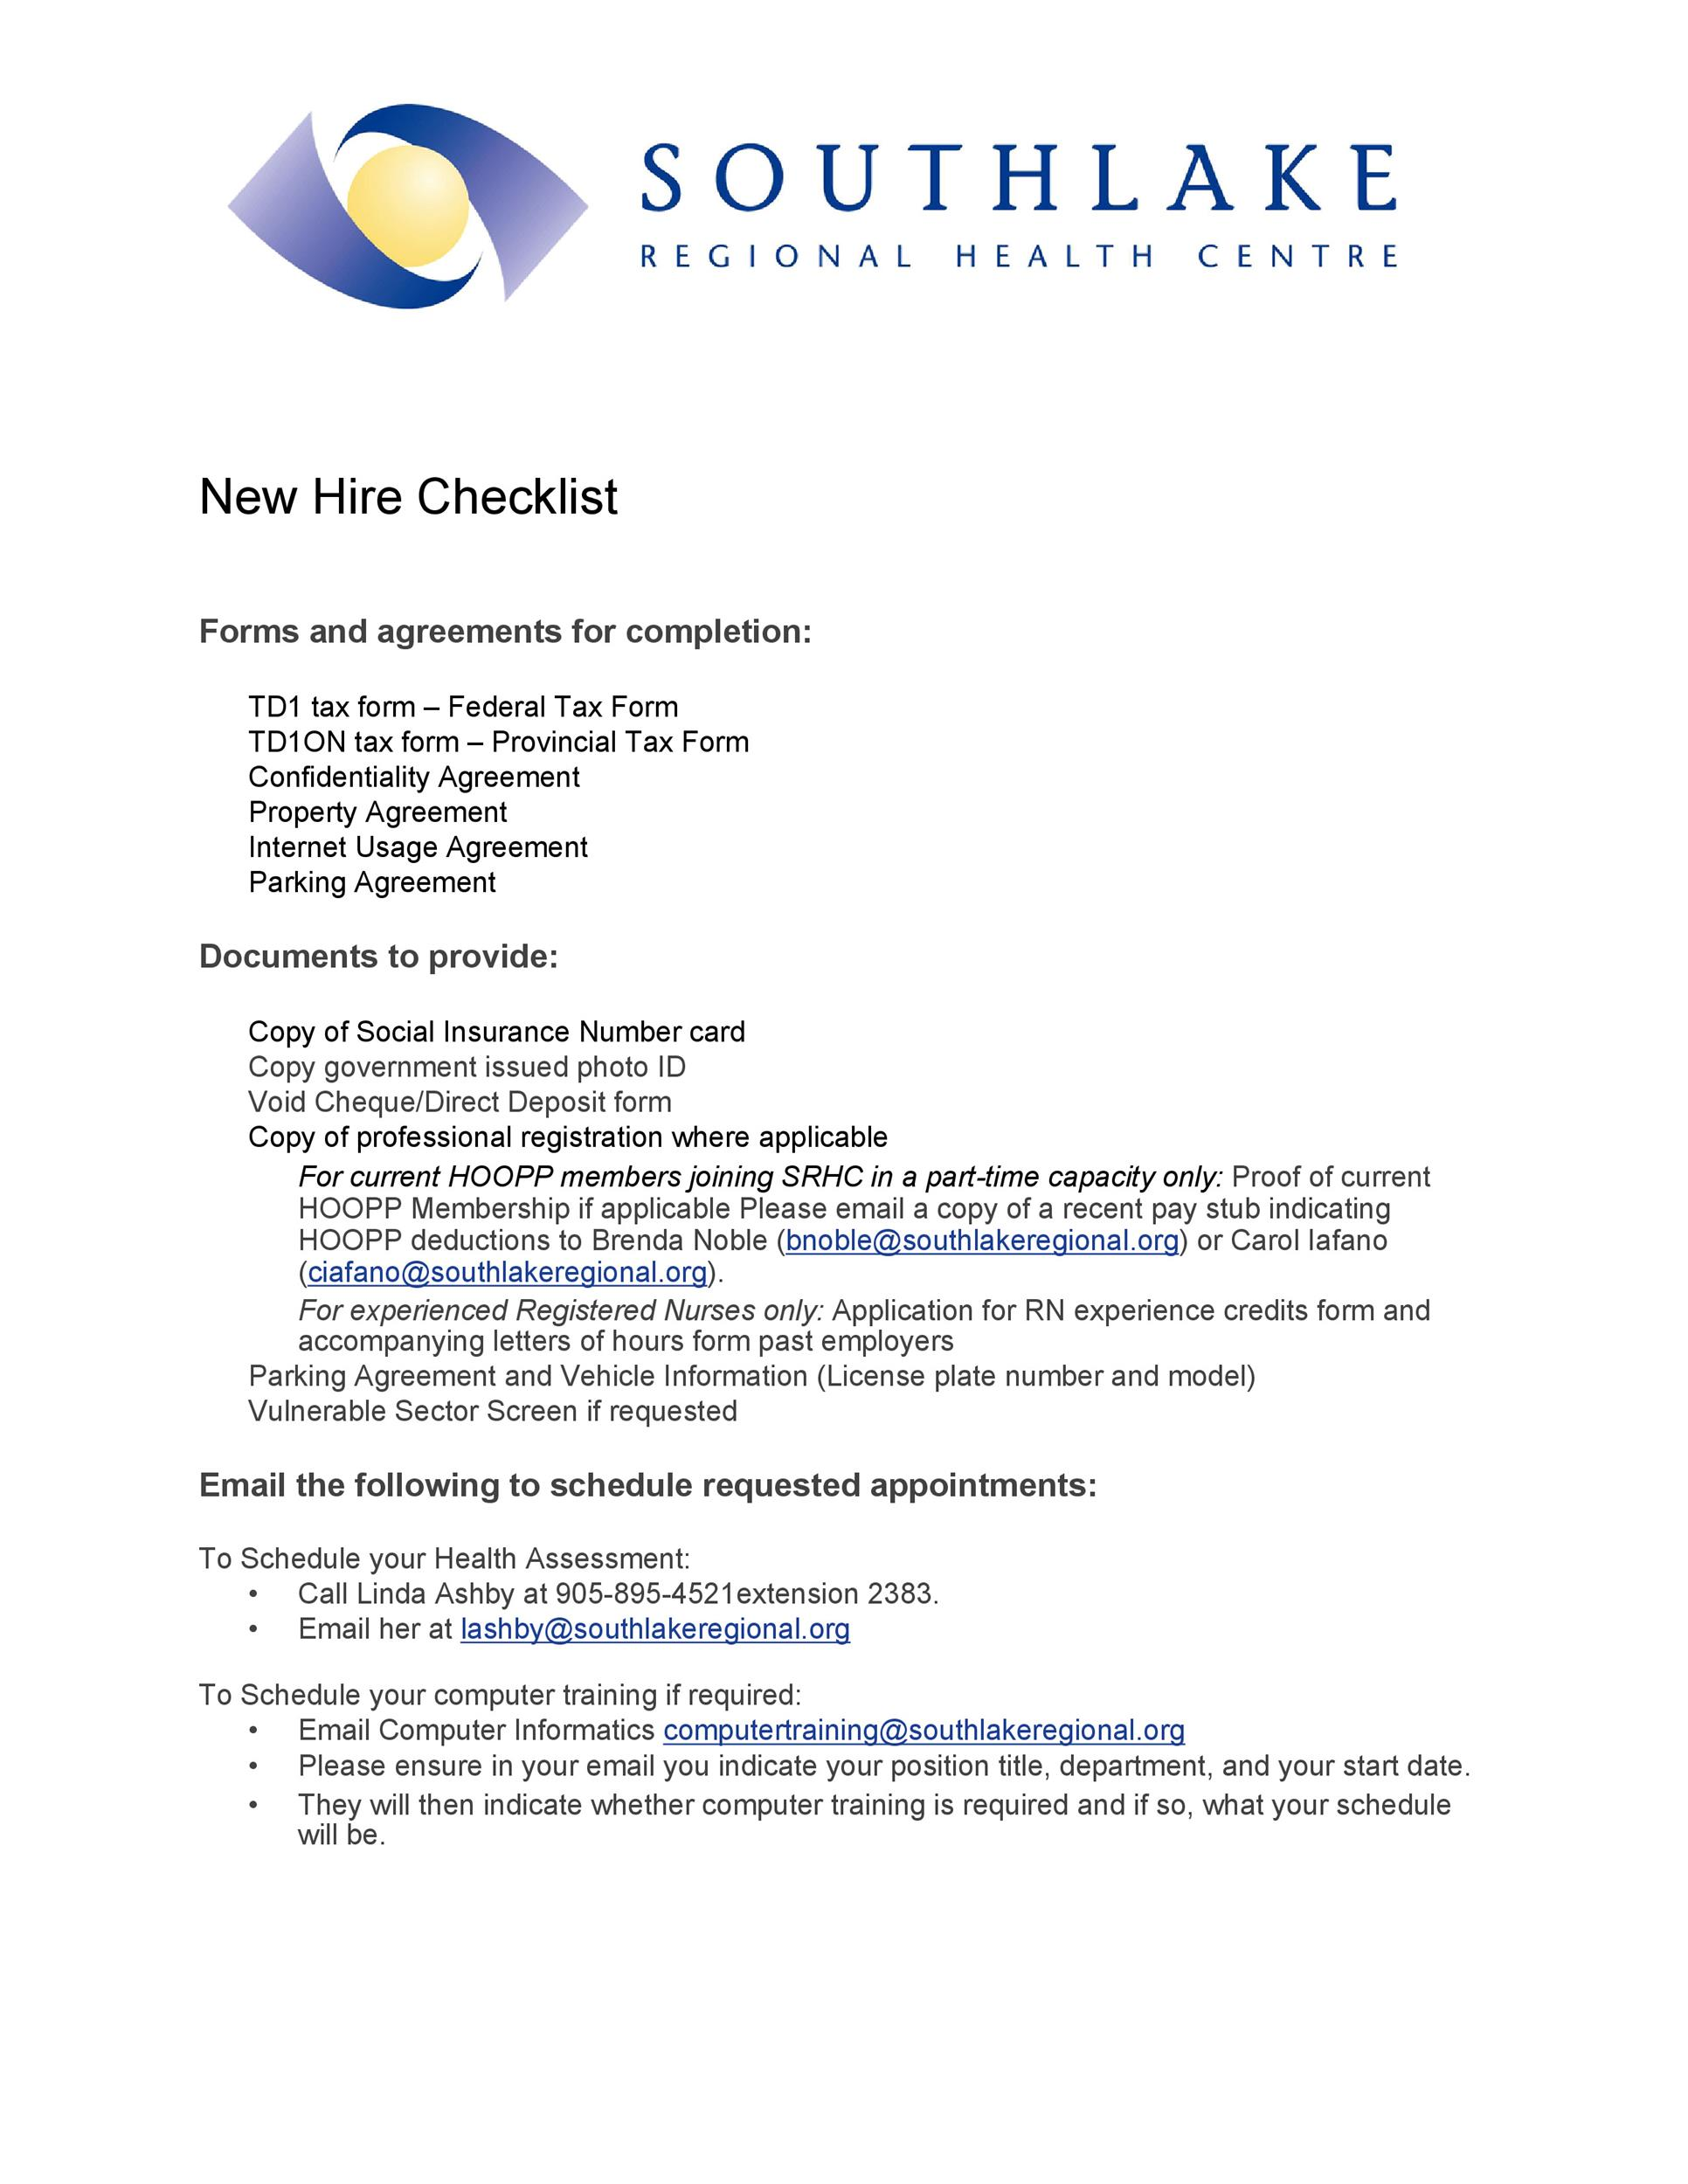 Free new hire checklist 36